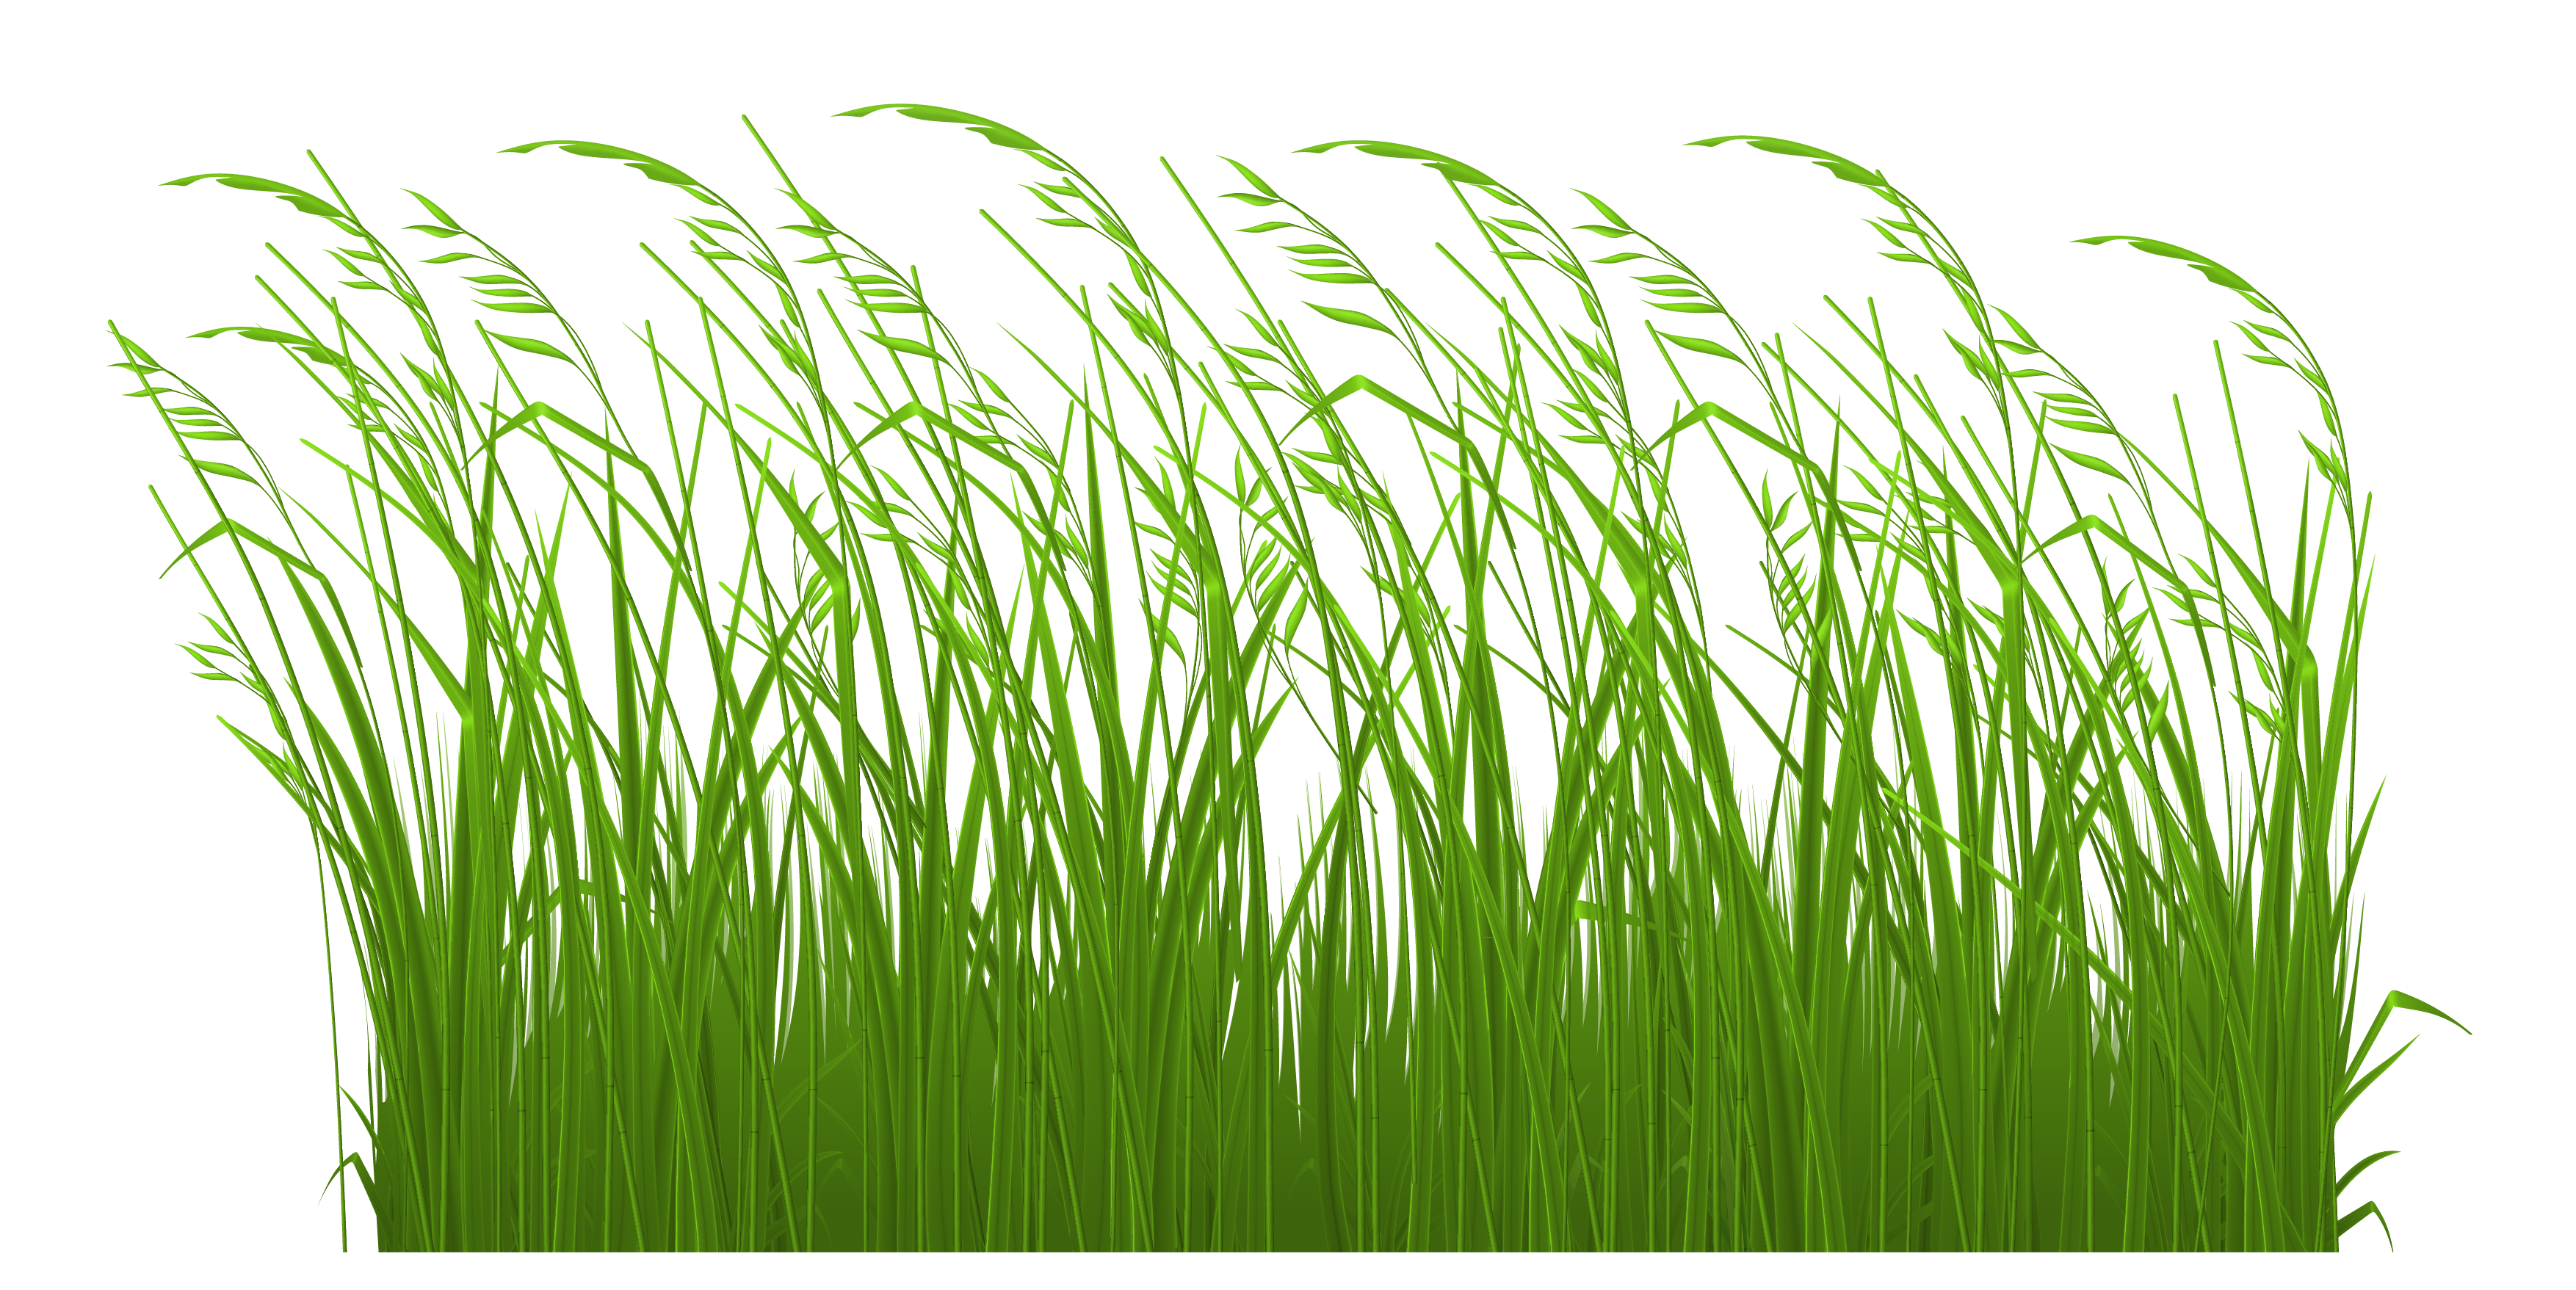 Grass graphic clipart image royalty free download Free Grass Clip Art Pictures - Clipartix image royalty free download